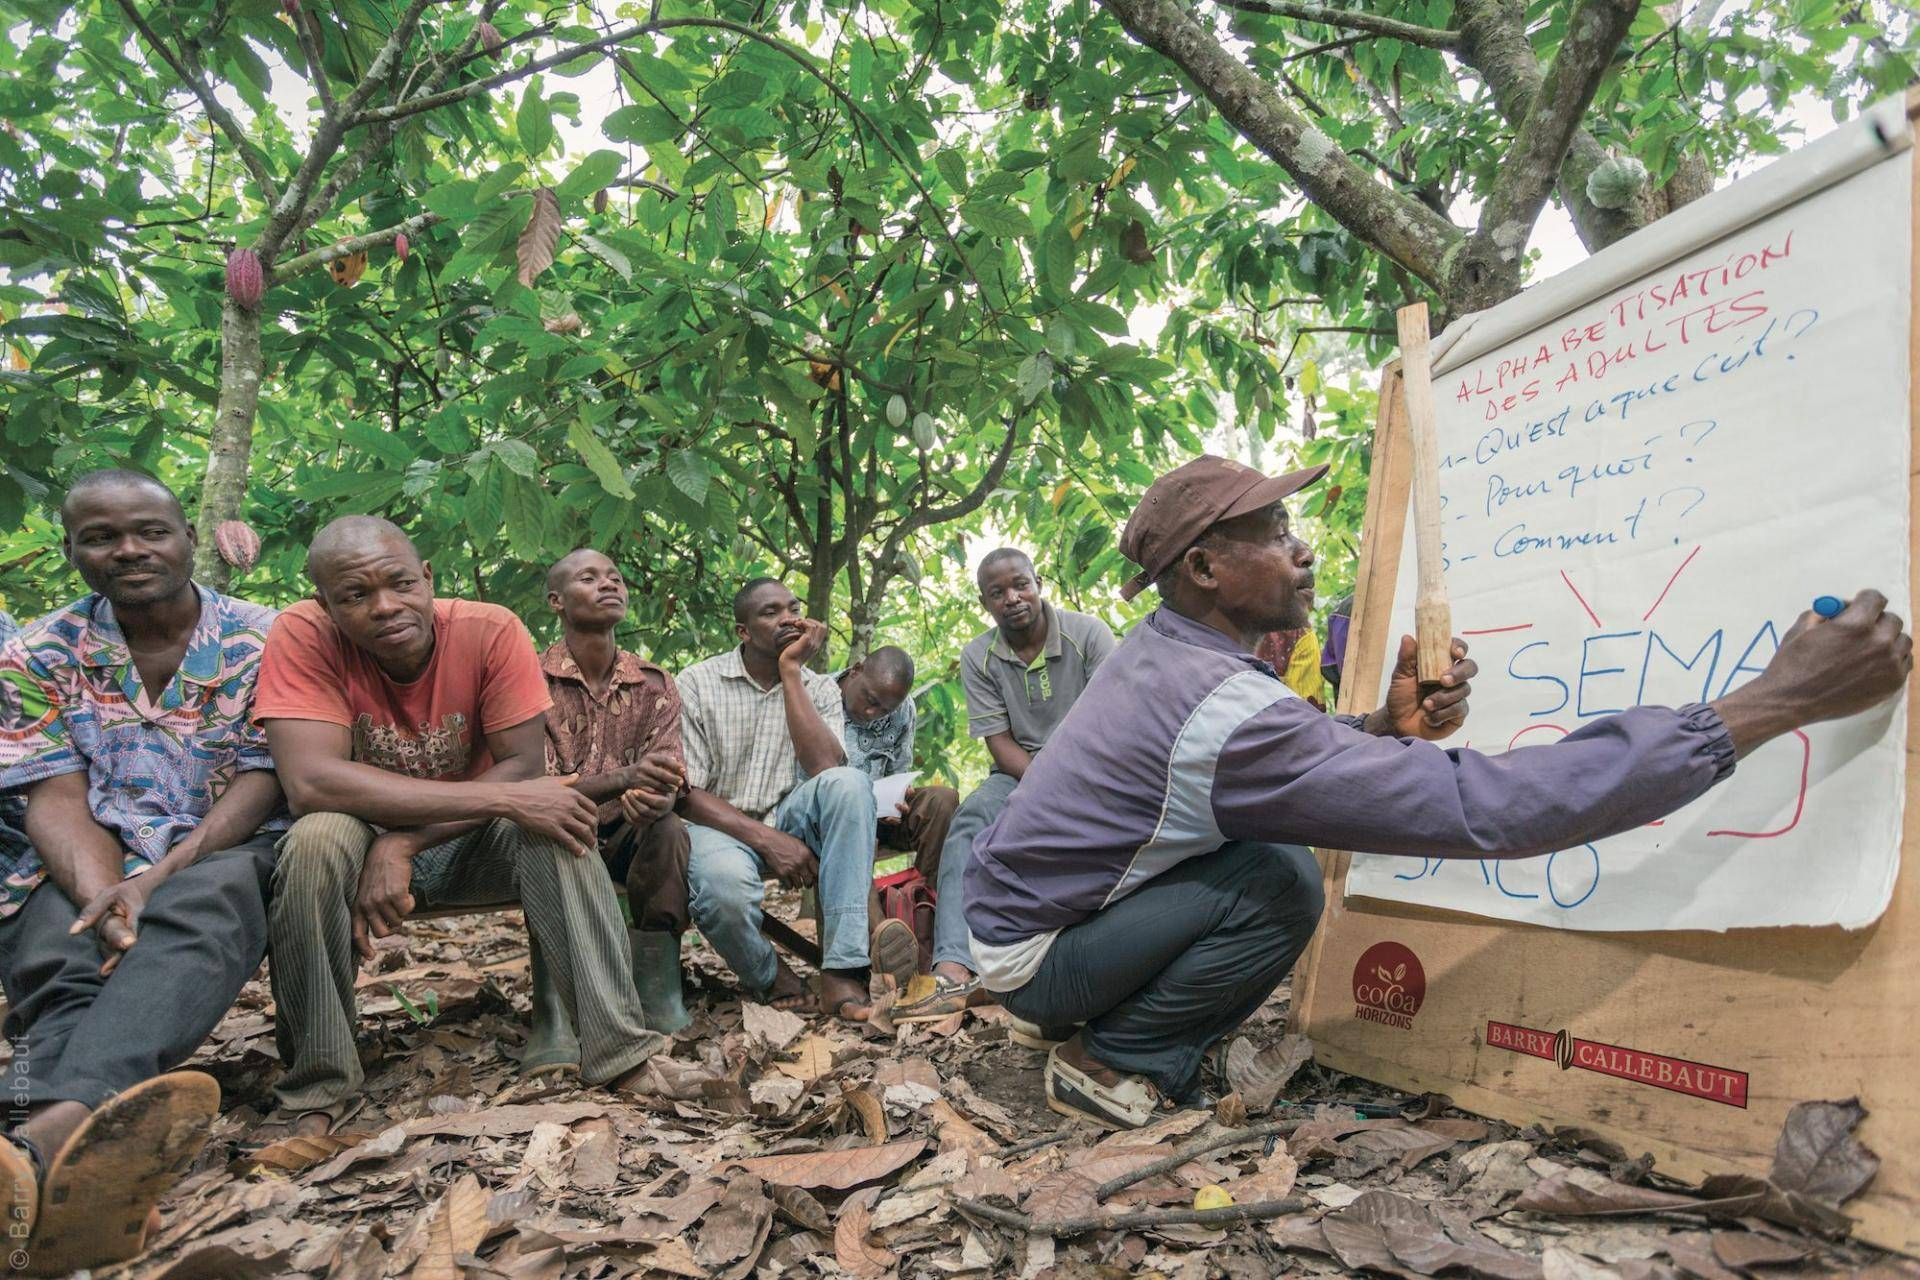 Cocoa farmer training in Côte d'Ivoire